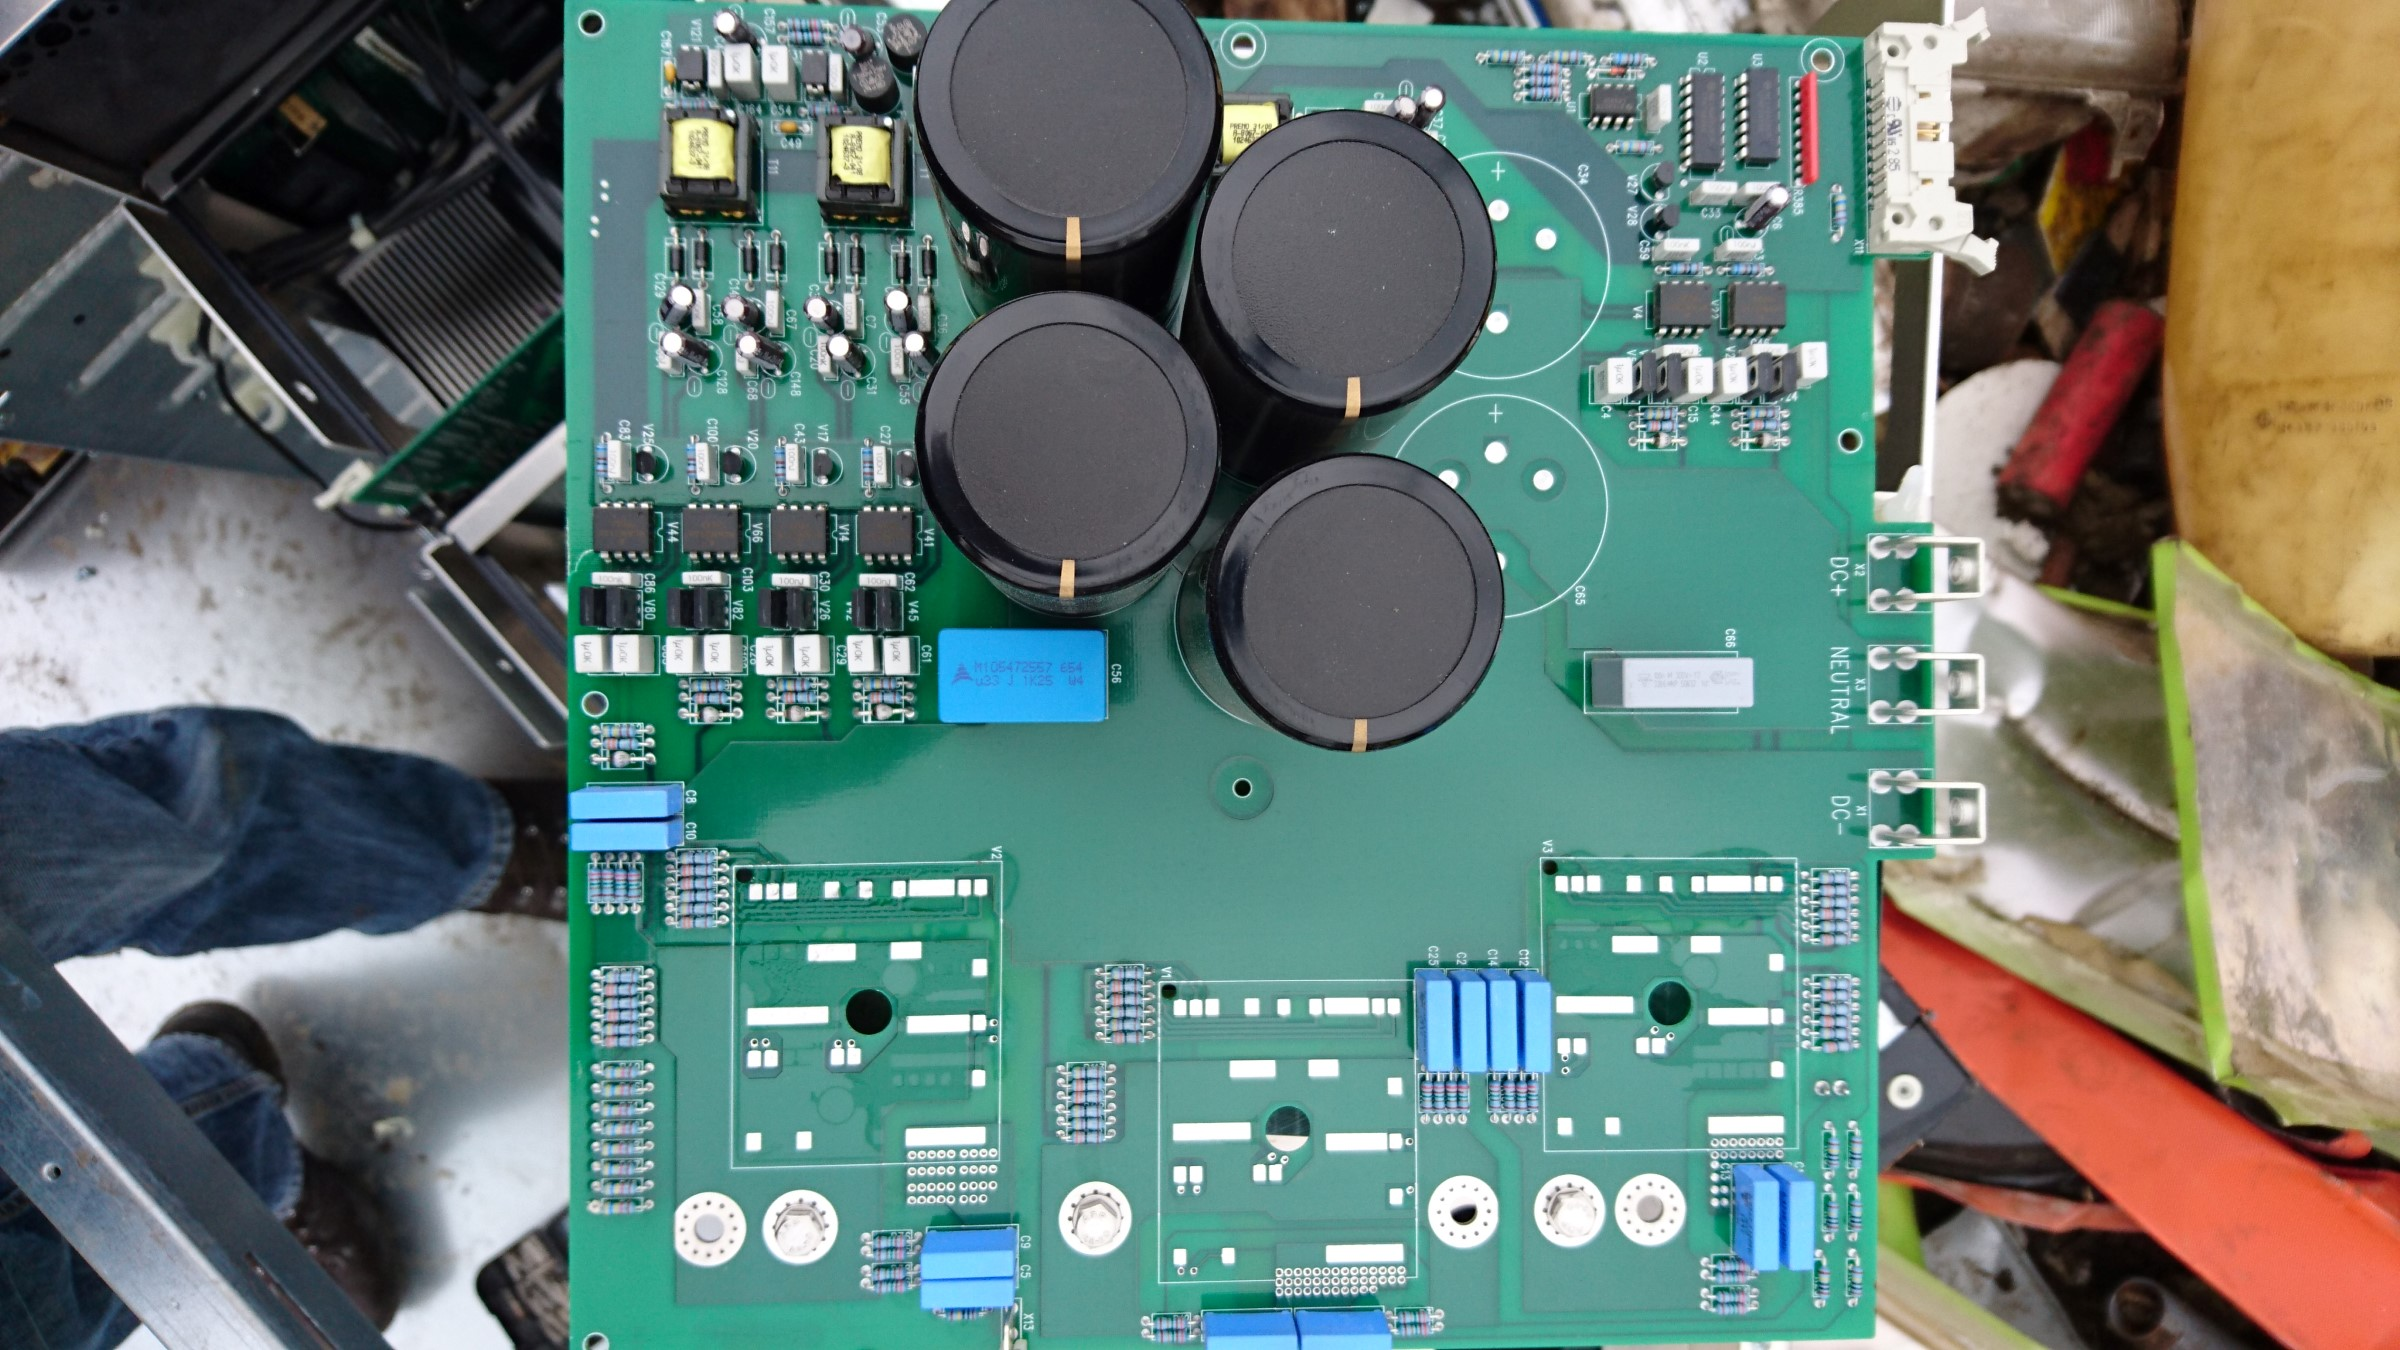 Teardown Eaton Powerware 30 Kva Ups Kaizer Power Electronics Leave A Comment Tags For Home Installation Inverter Wiring The Pfc Circuit Board Has Three Skkt 122 16e Thyristor Half Bridge Modules Rated At 1700 V And 130 In Lower Left Of Close Up Picture We Can See